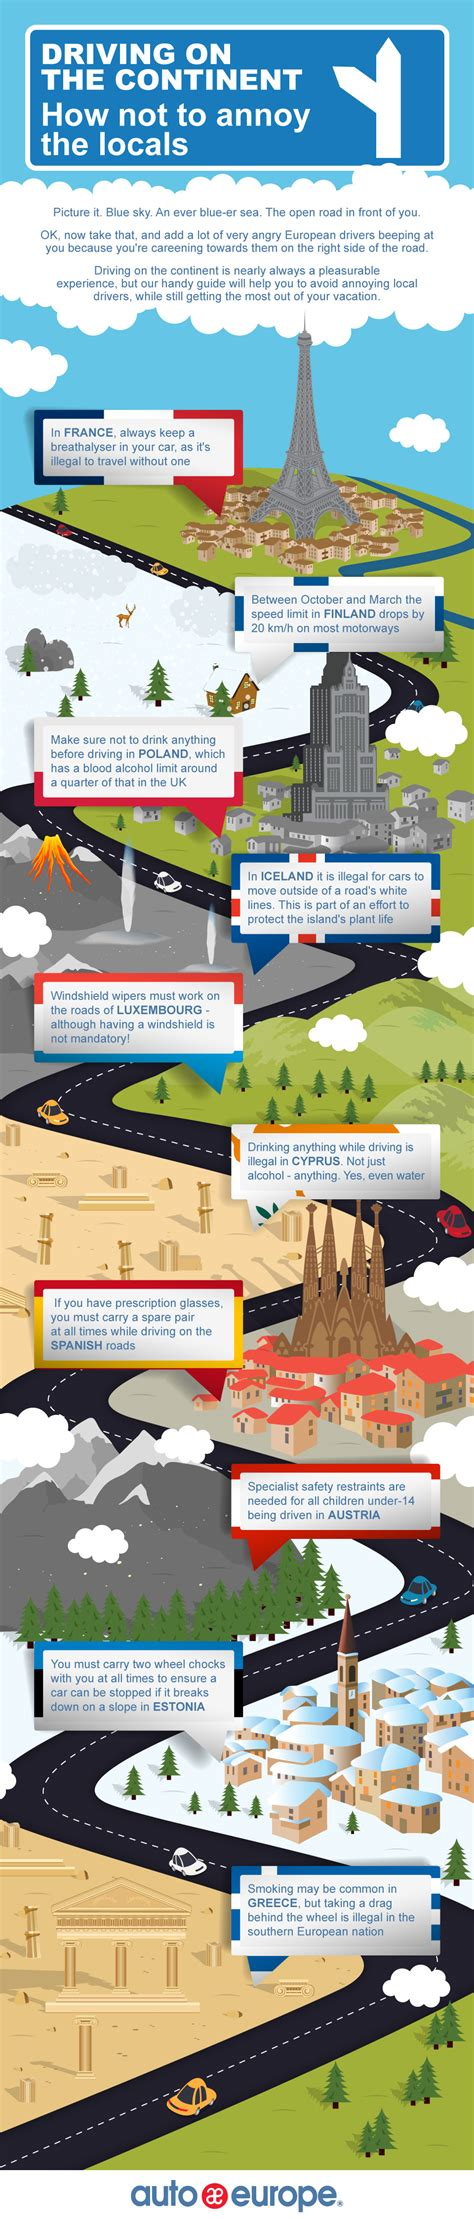 Car Hire Infographic: Driving on the Continent   Auto Europe